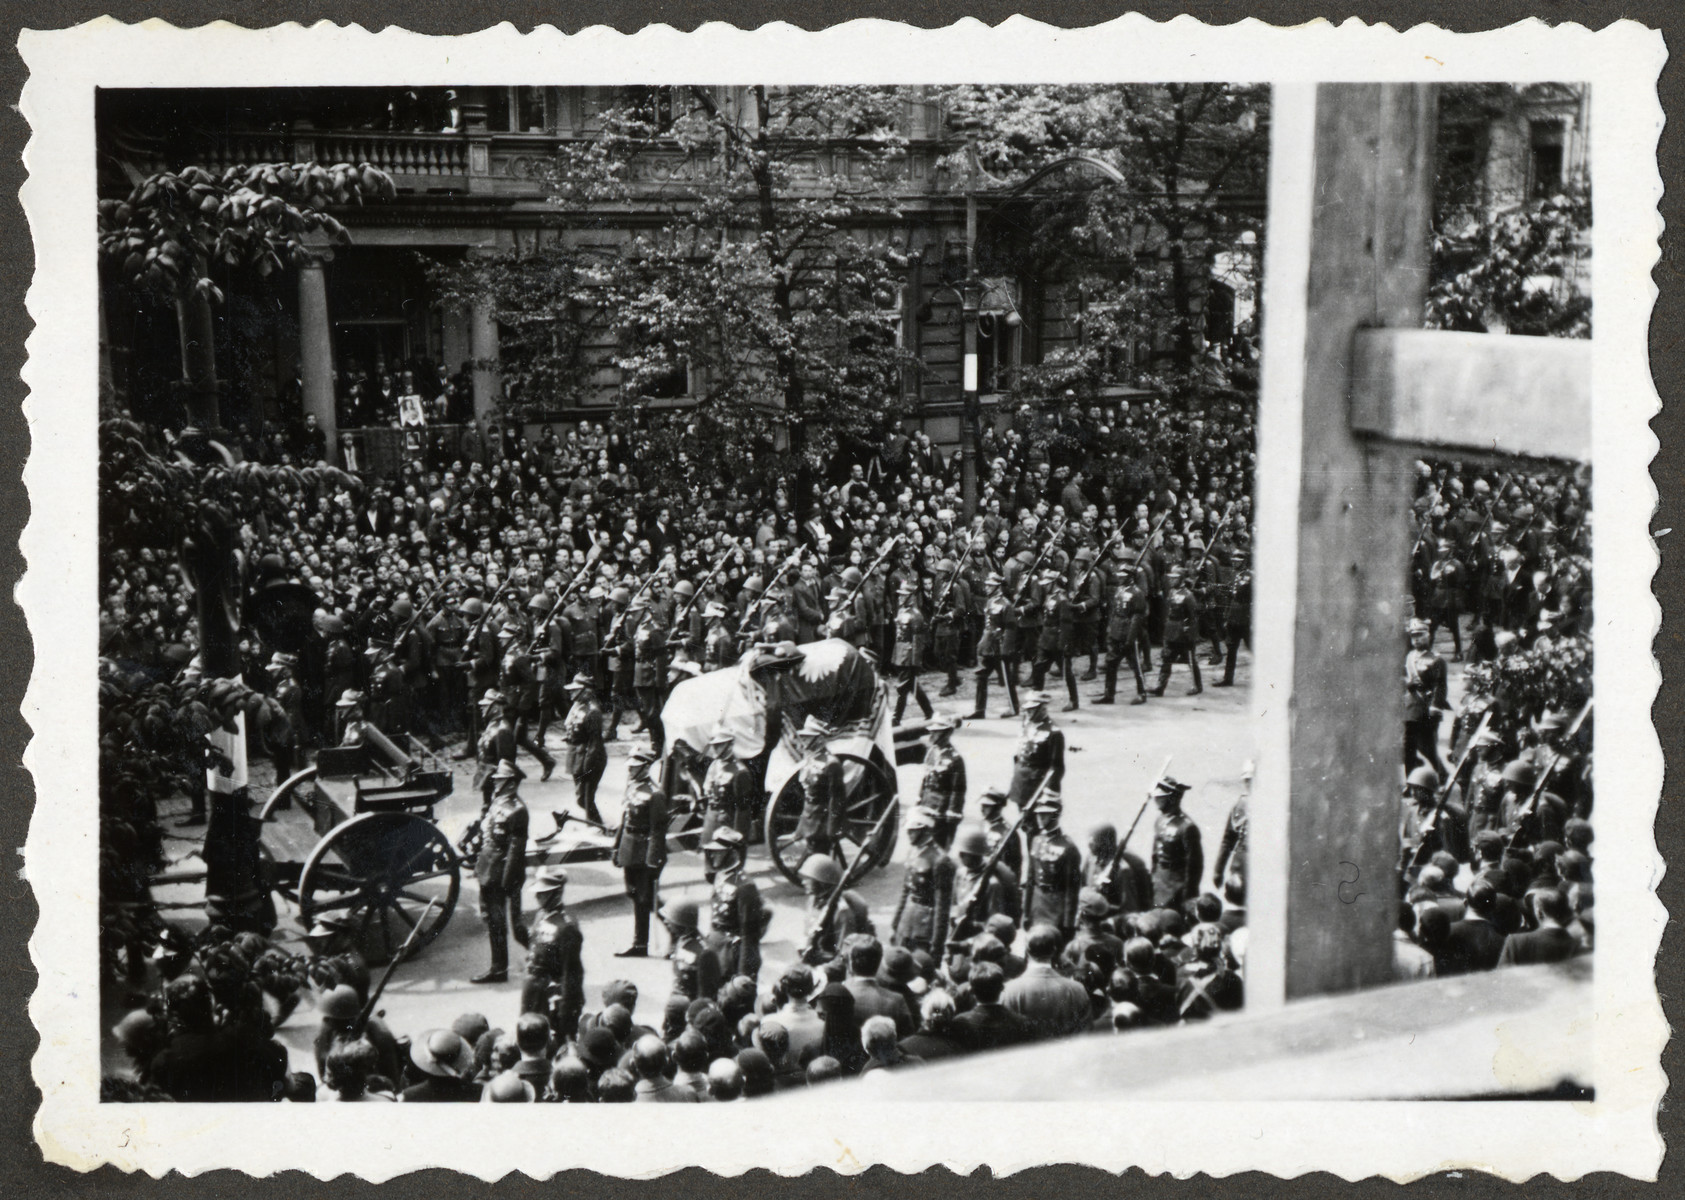 Polish soldiers march down a street in Warsaw escorting the casket during the funeral procession for Marshal Jozef Pilsudski.